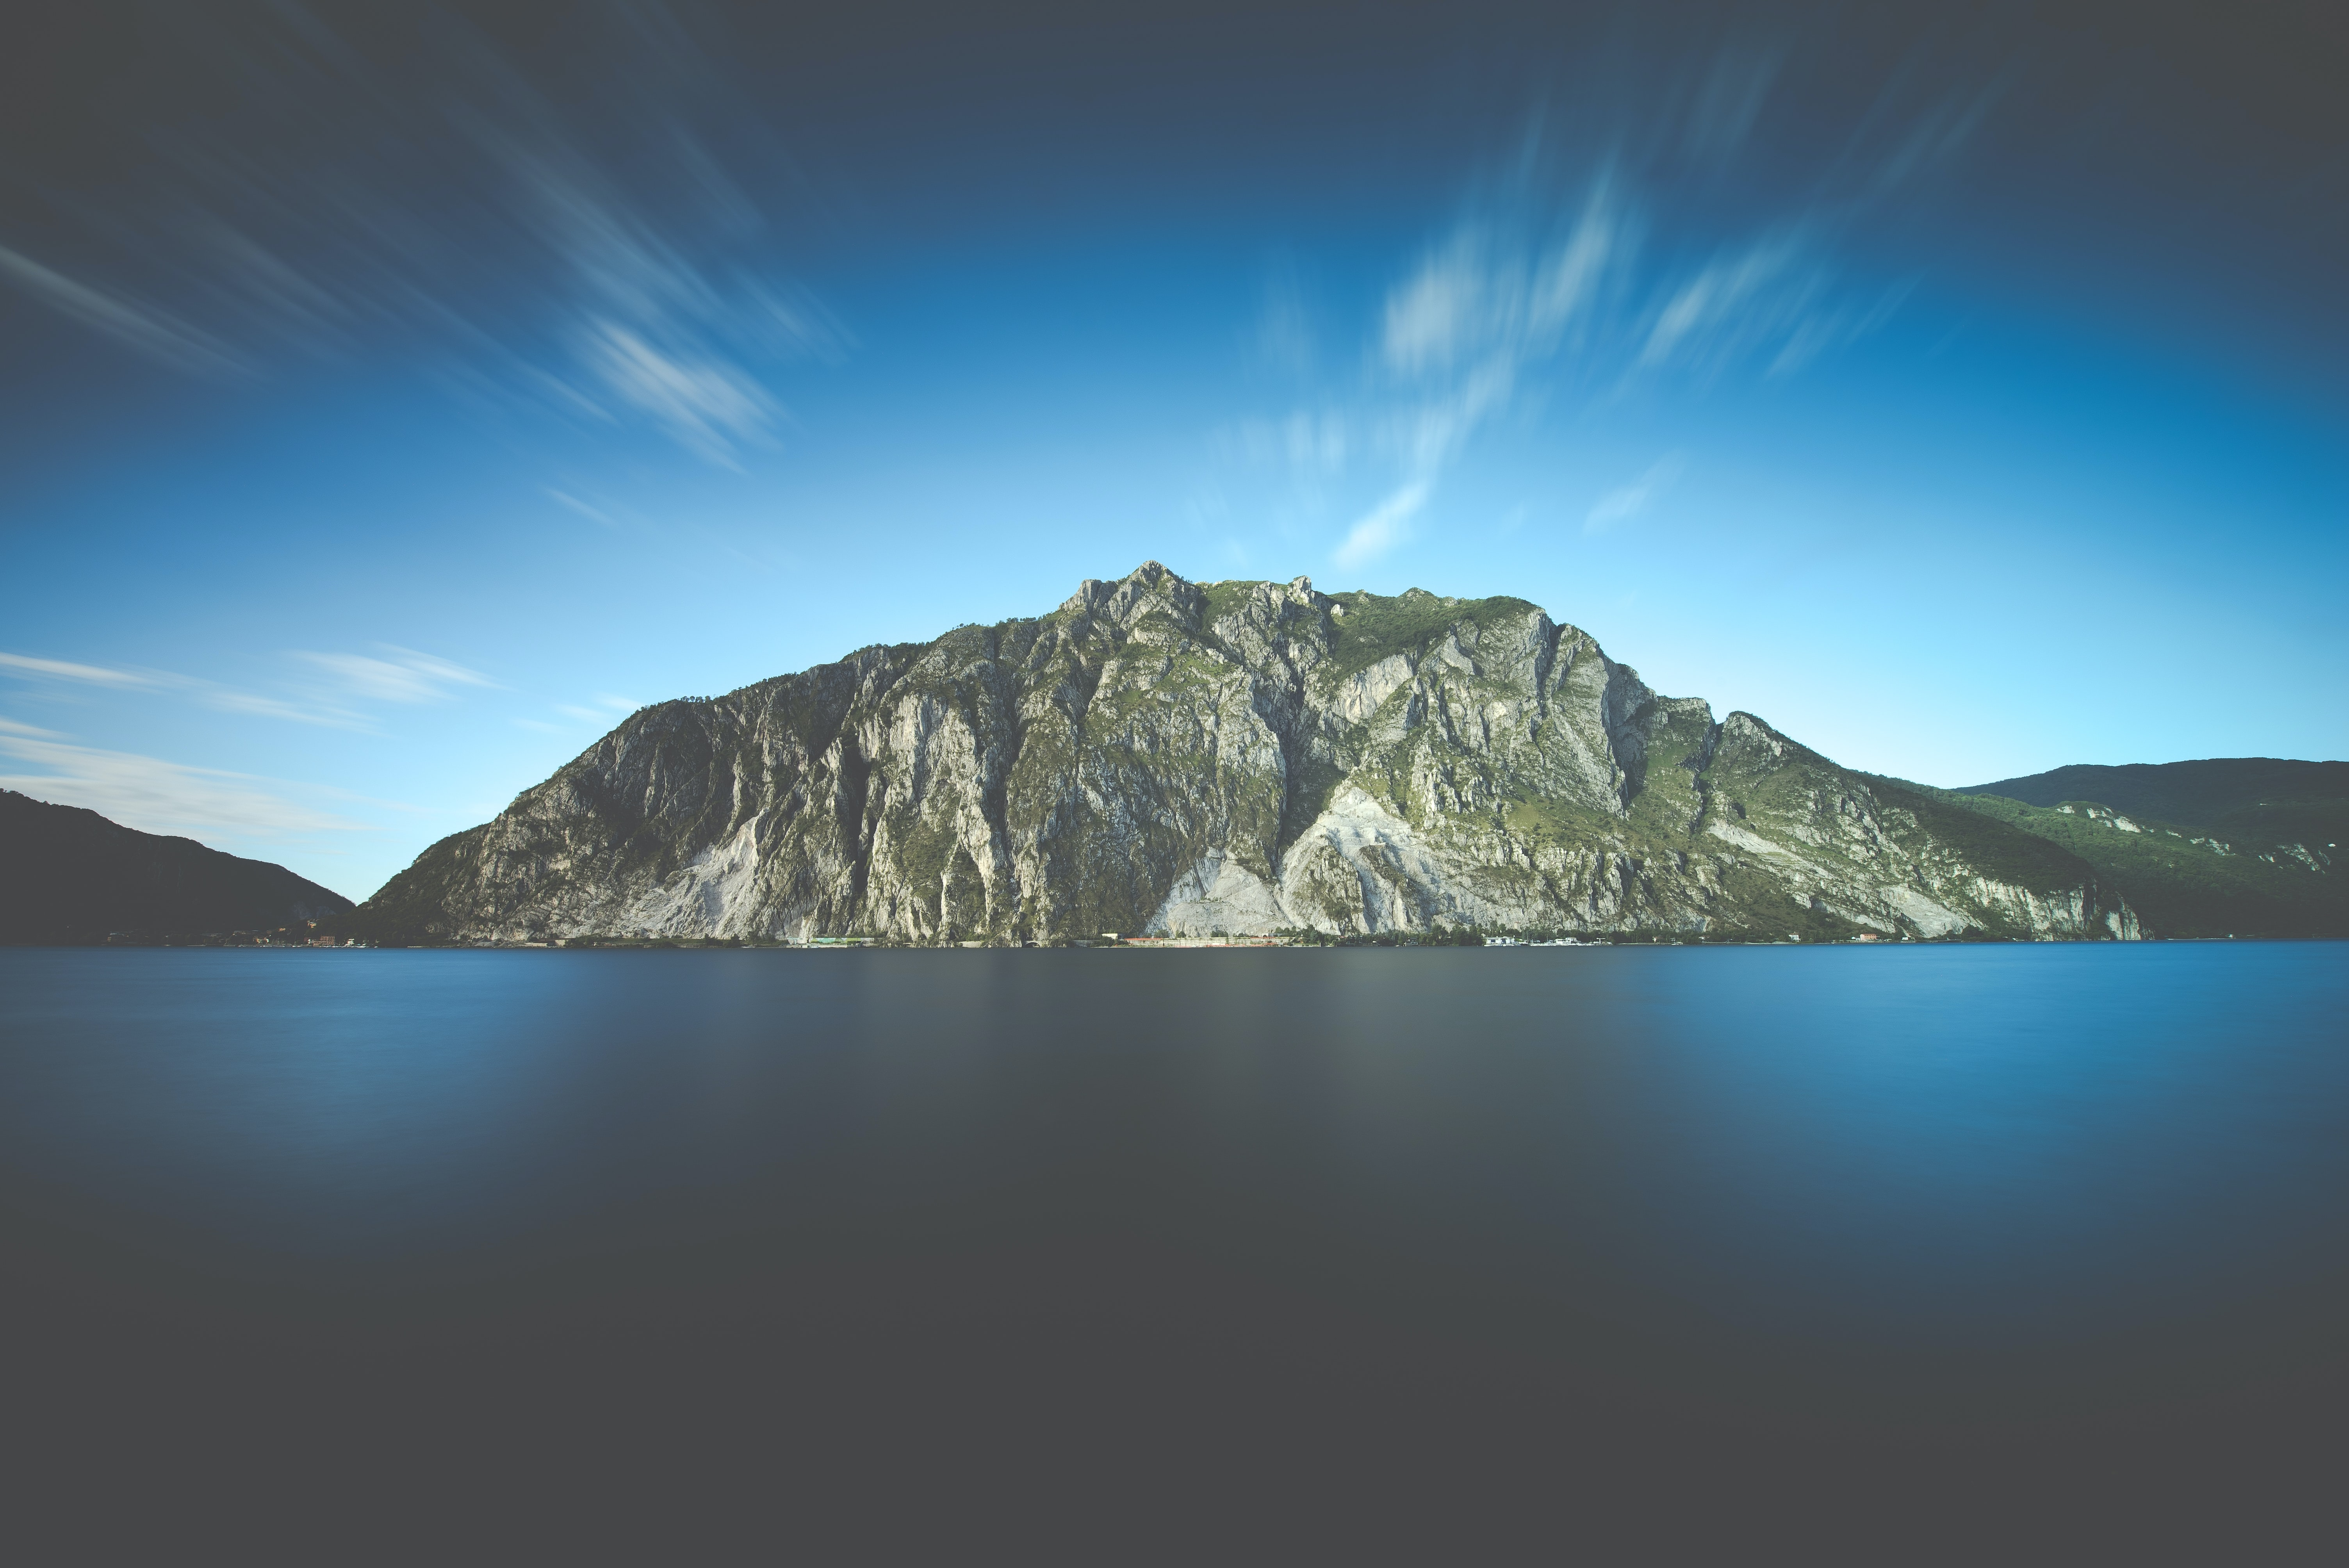 A rock mountain surrounding a body of water with moving clouds up in the sky